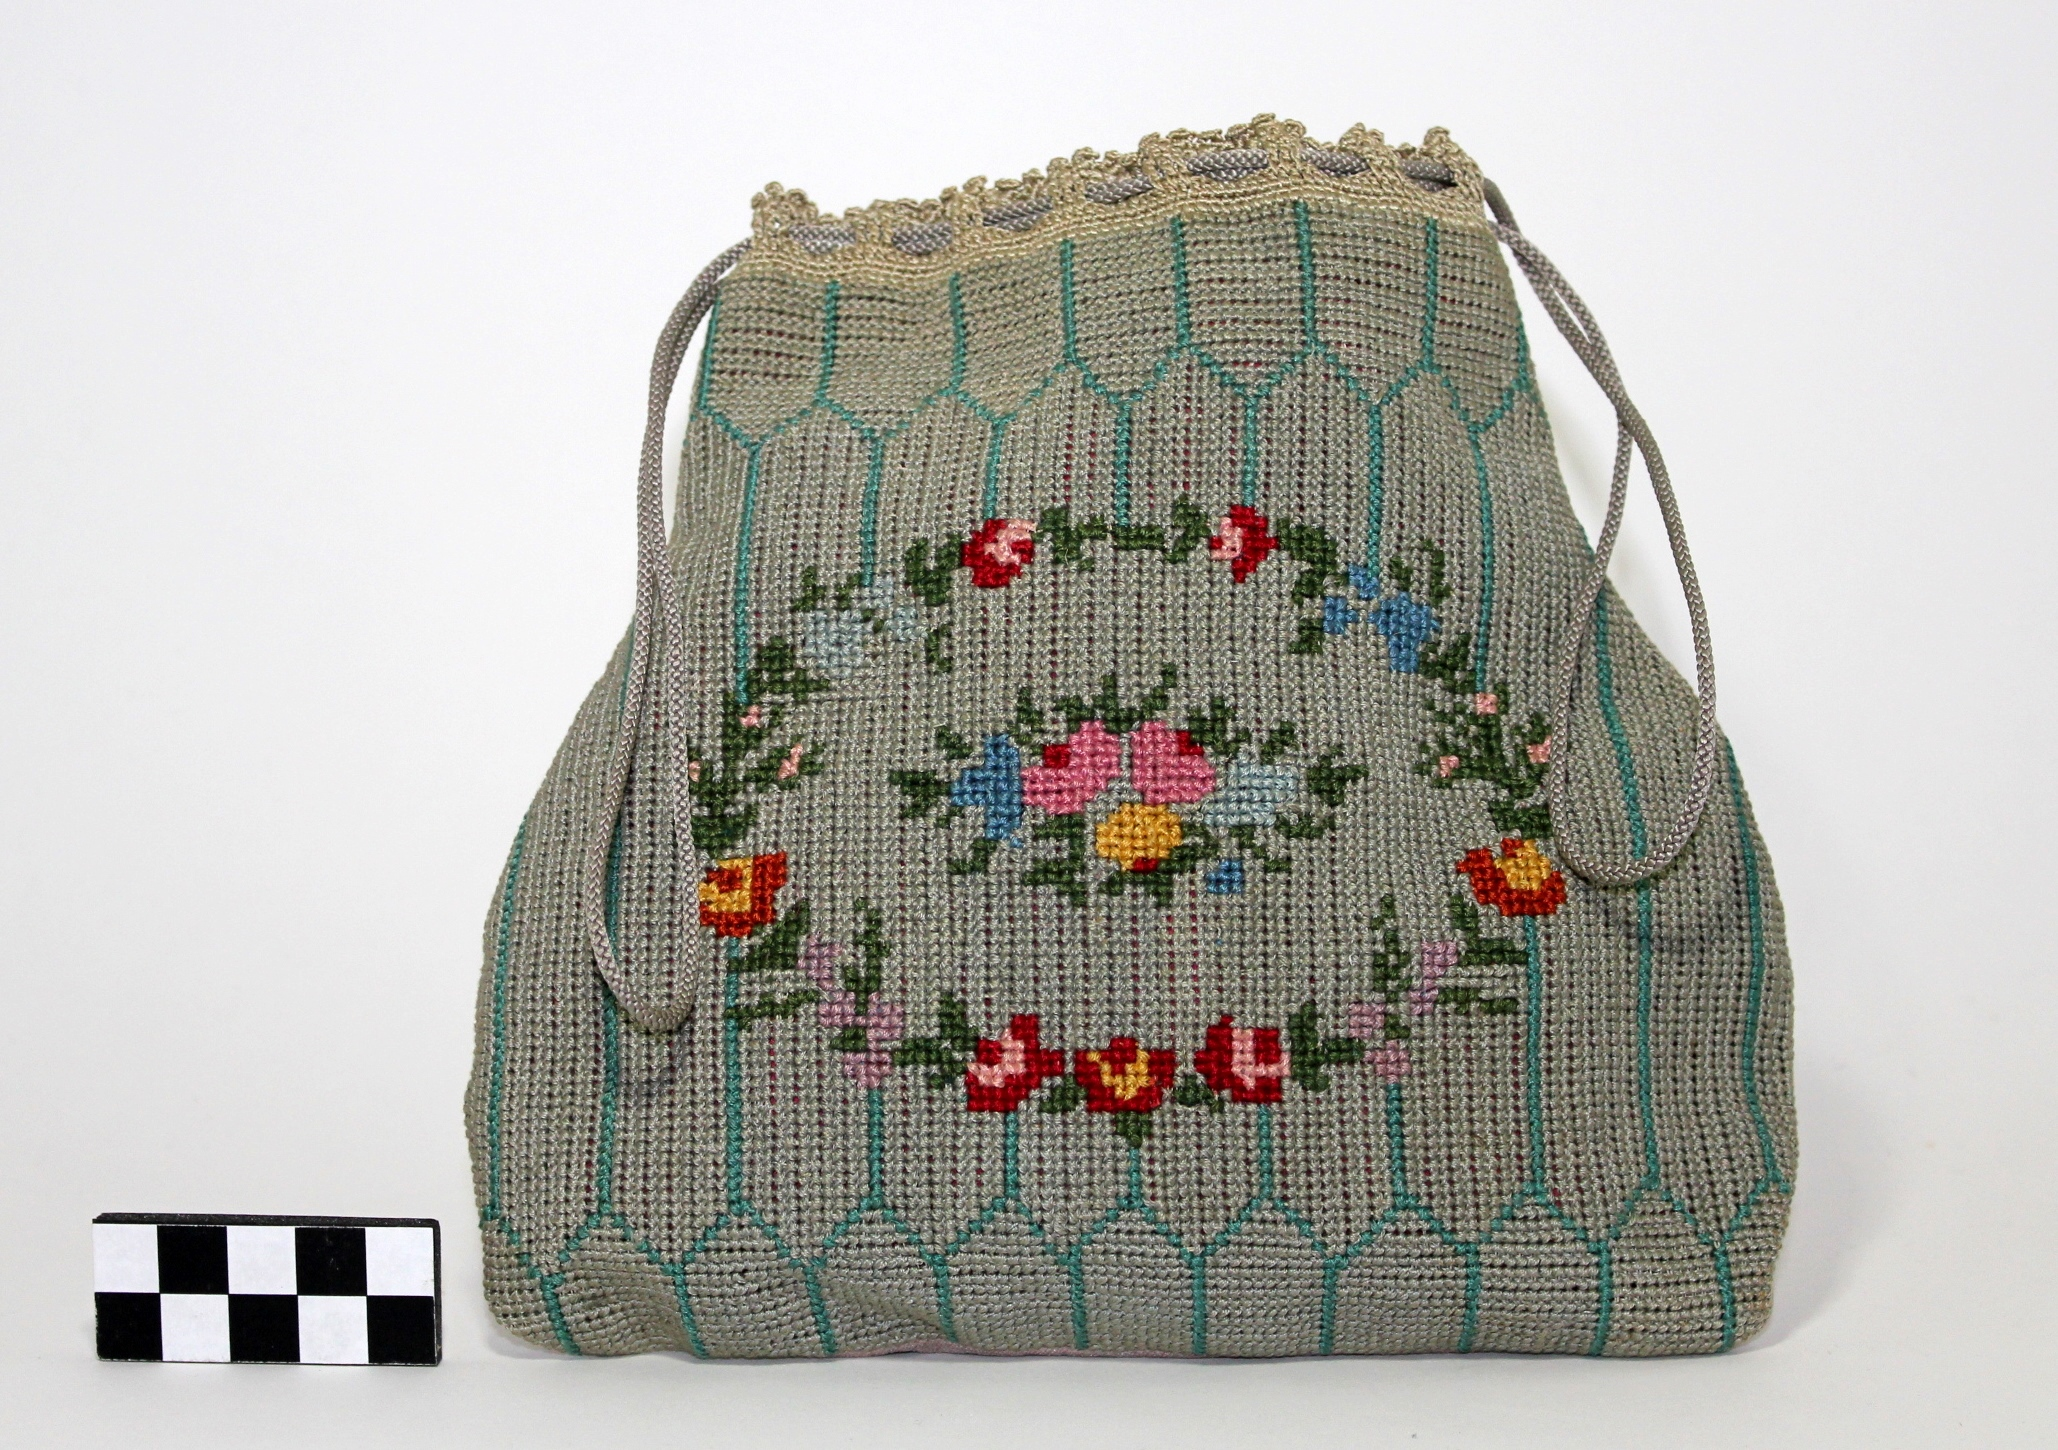 Blue needlework Victorian purse with flower in the middle